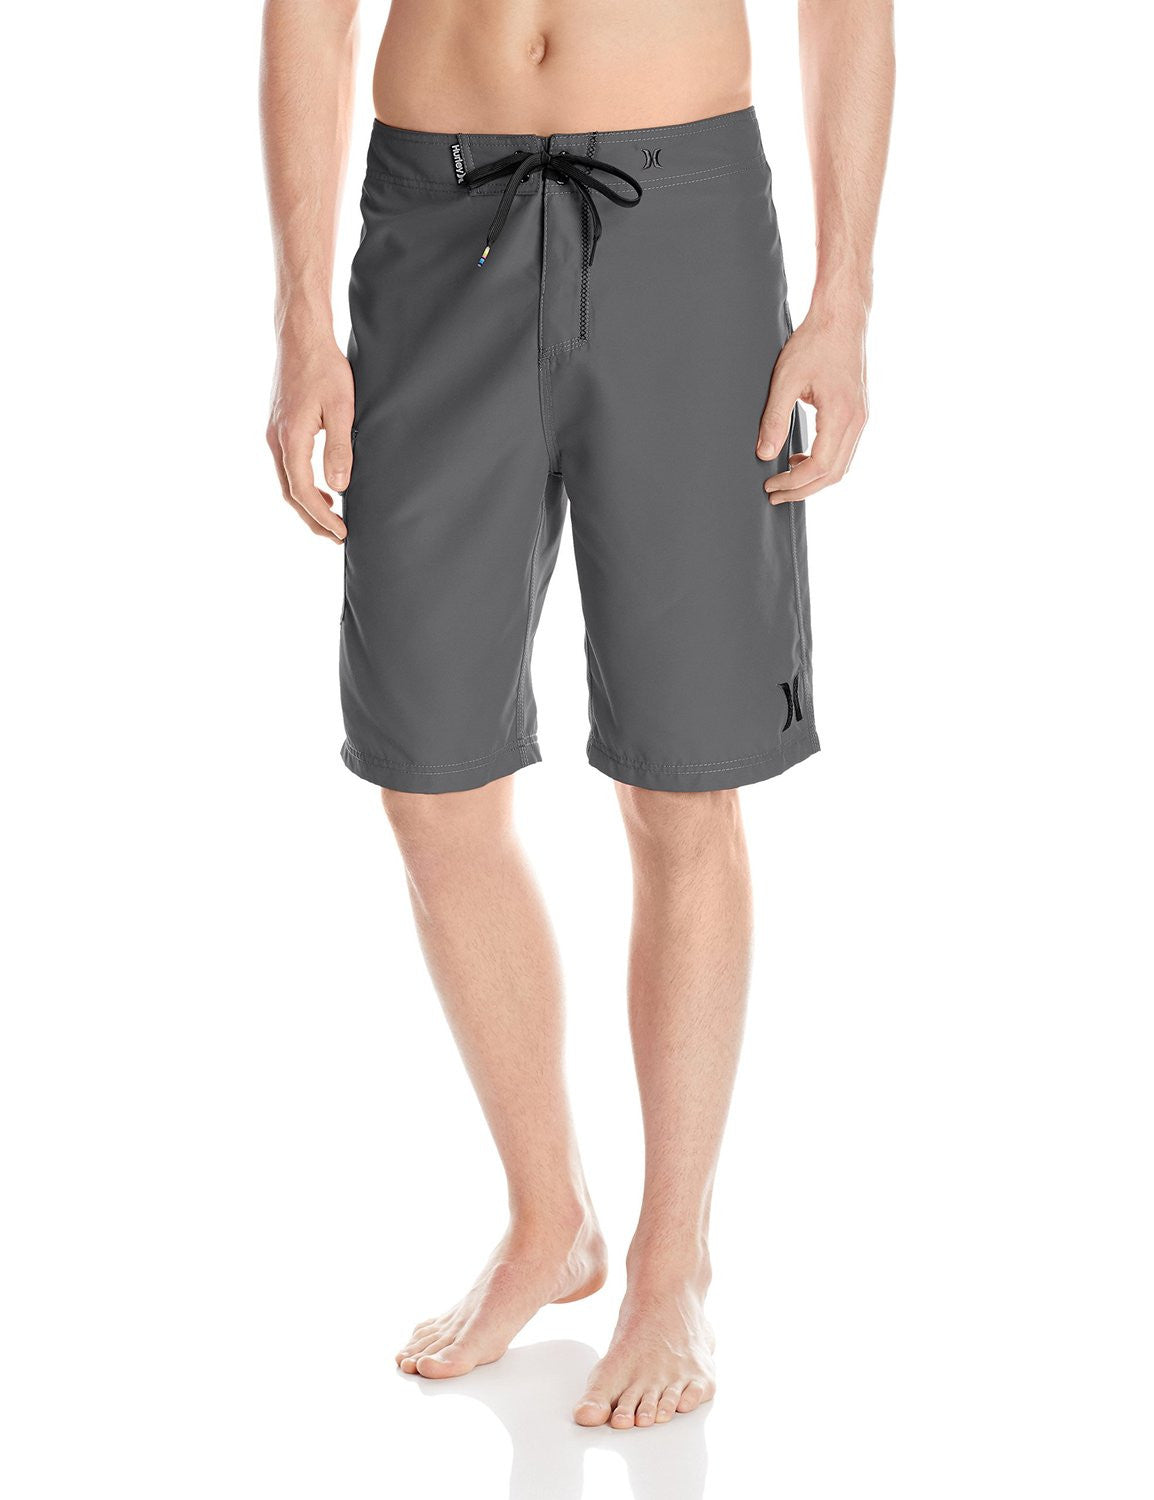 85e328b027 Hurley One and Only 22-Inch Boardshort - Men's - Shoplifestyle